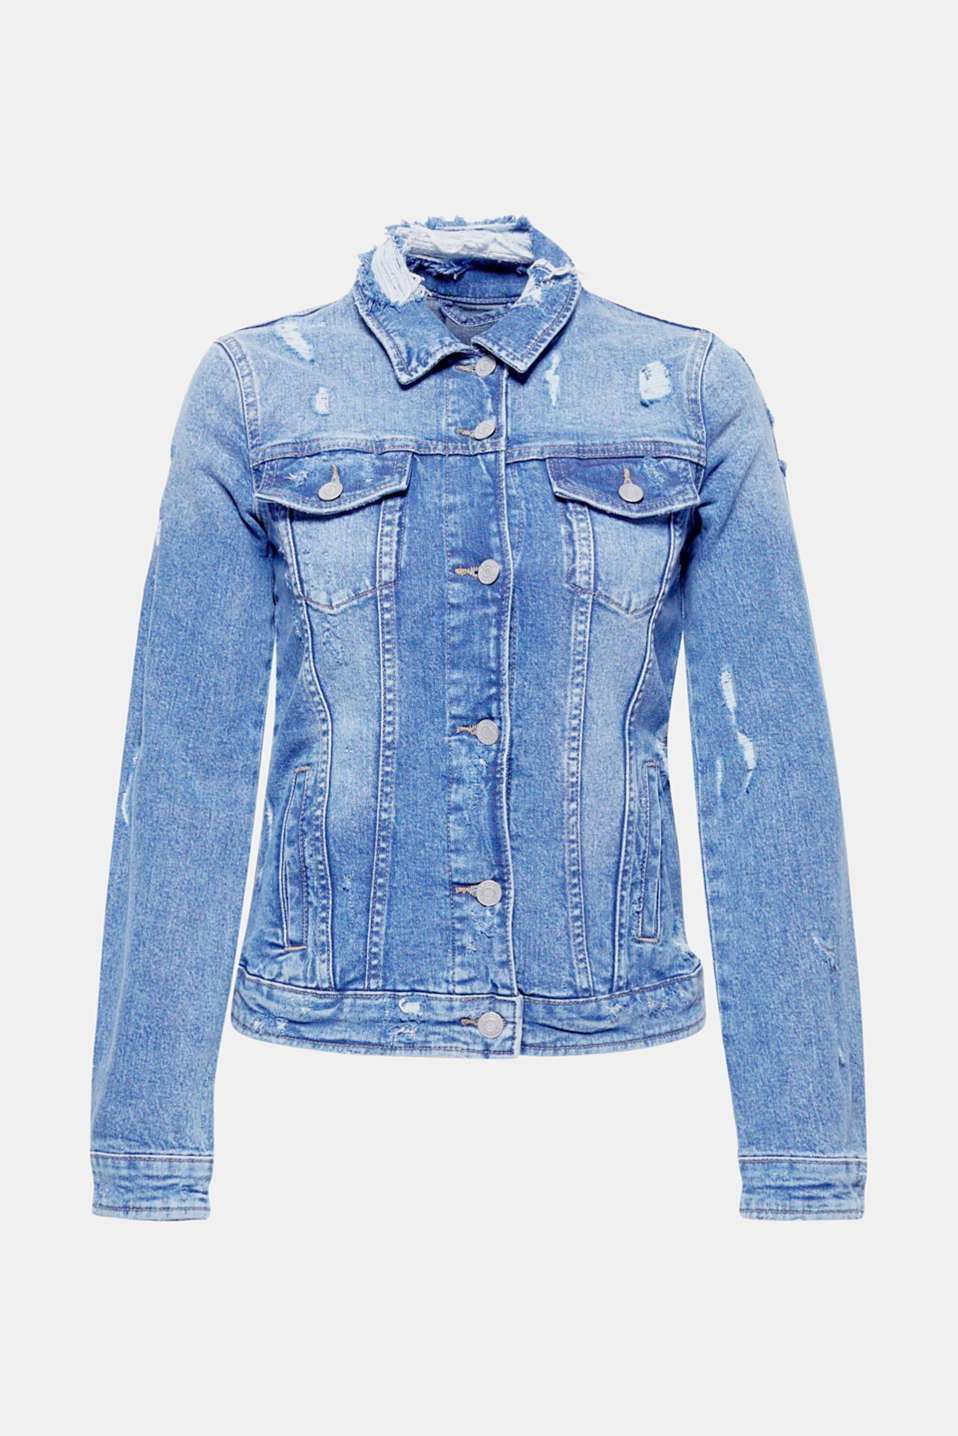 The more the better: Heavy distressed effects give this denim jacket its cool, trendy look!